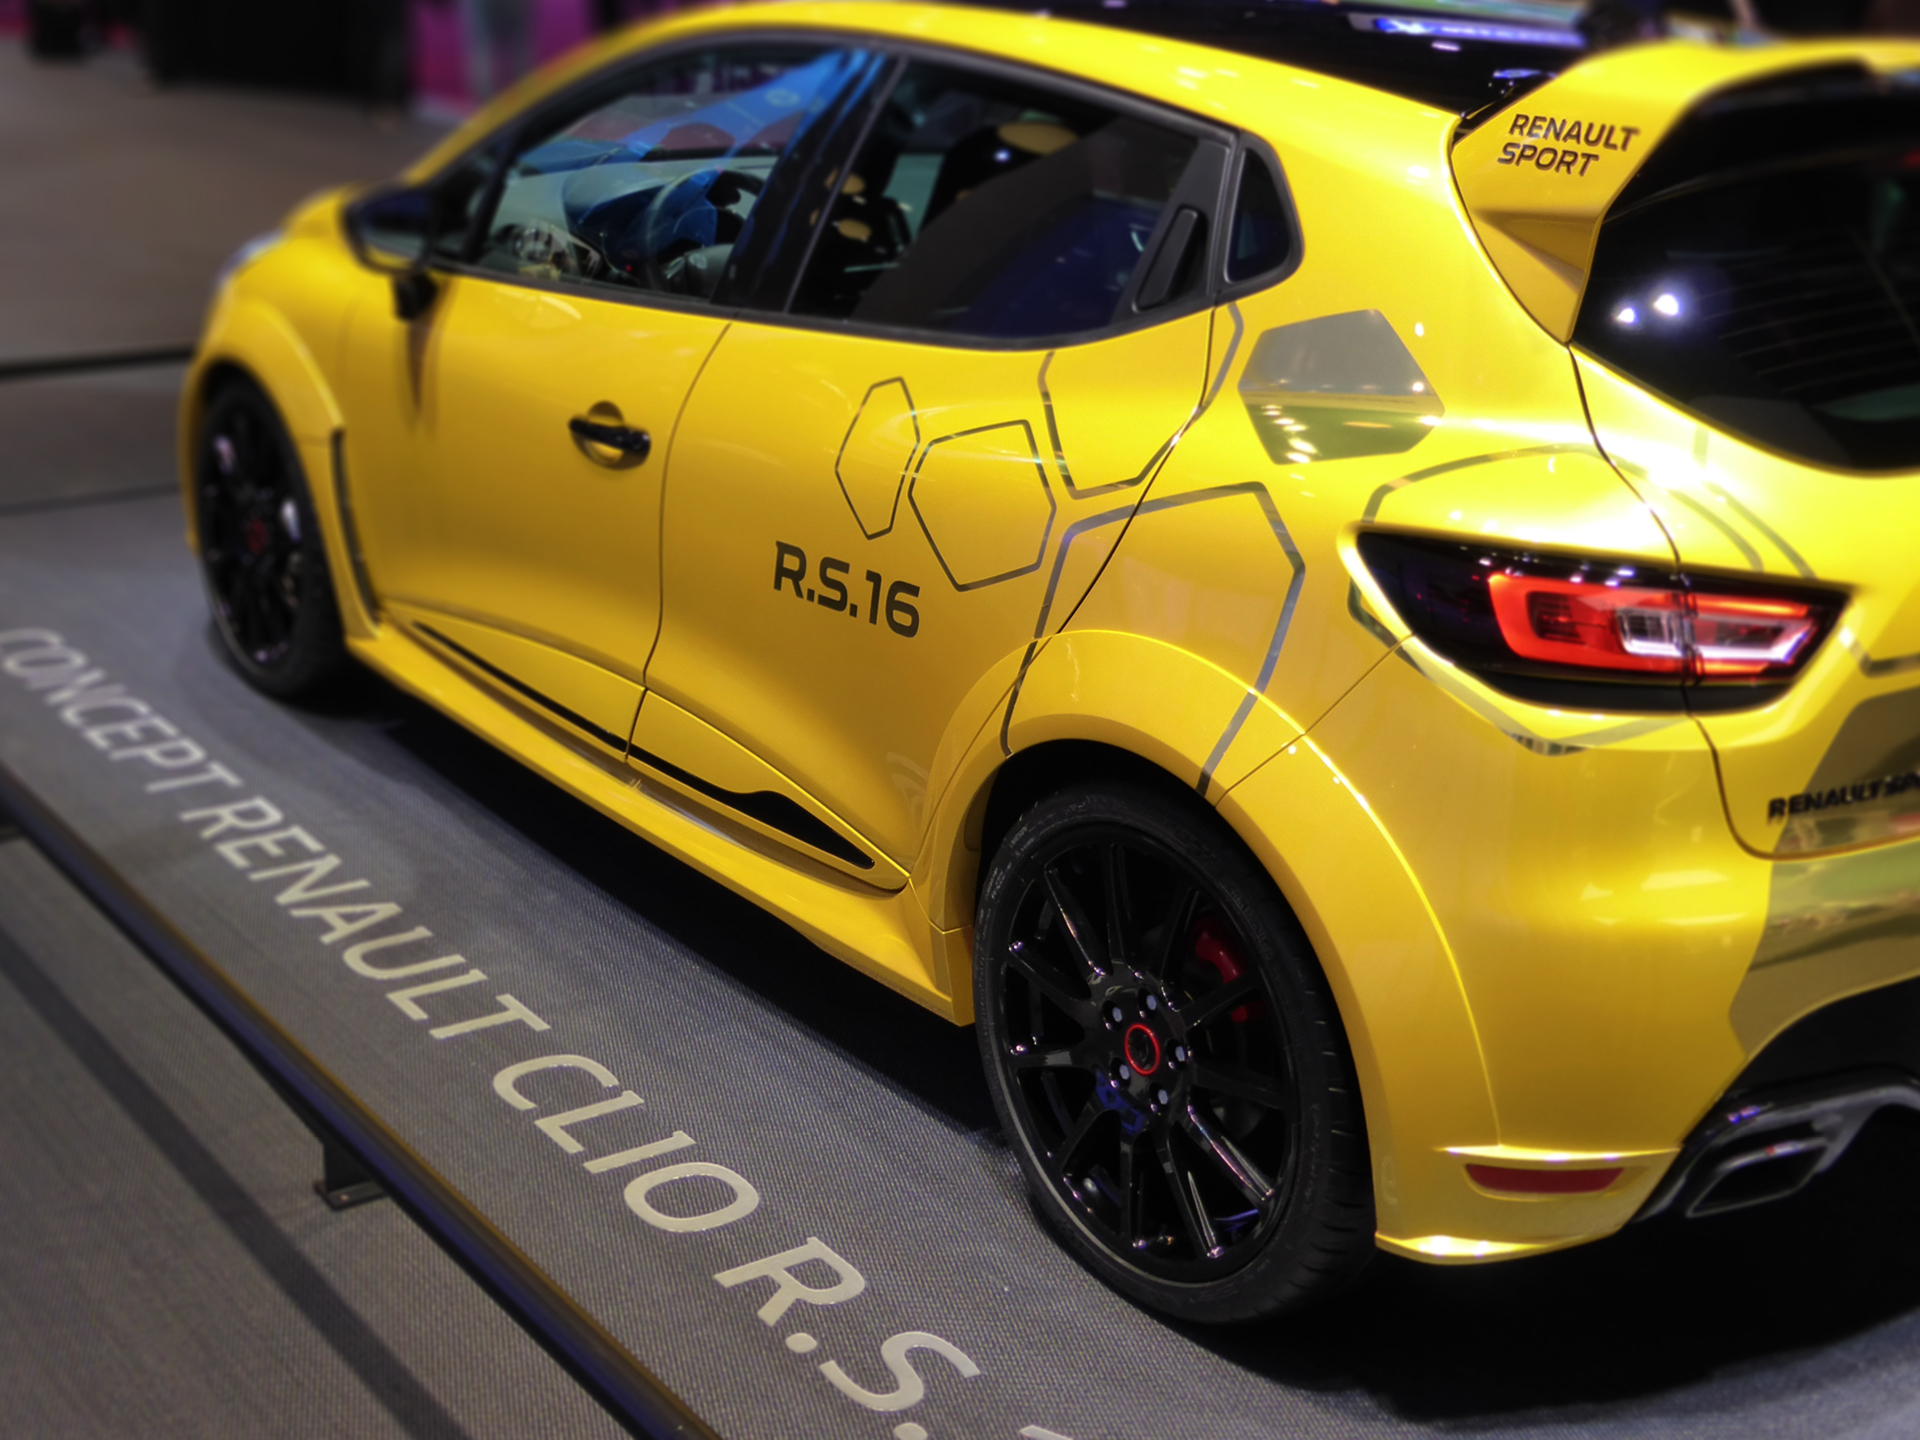 Renault Clio RS16 - side view - 2016 - Mondial Auto - photo ELJ DM